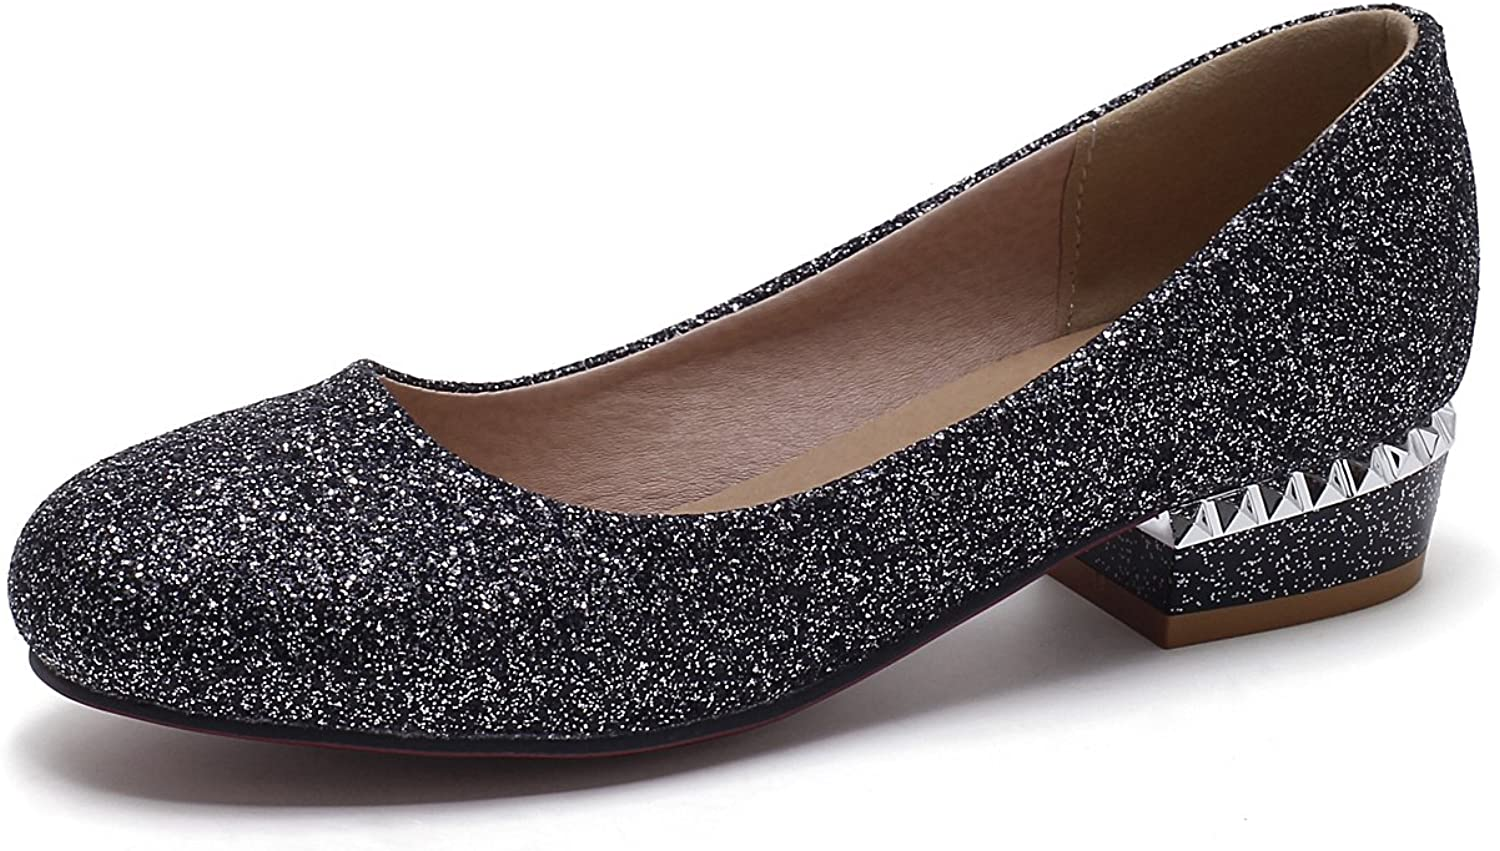 DoraTasia Sequin Fabric Round Toe Thick Low Heel Slip on Women's Pumps shoes